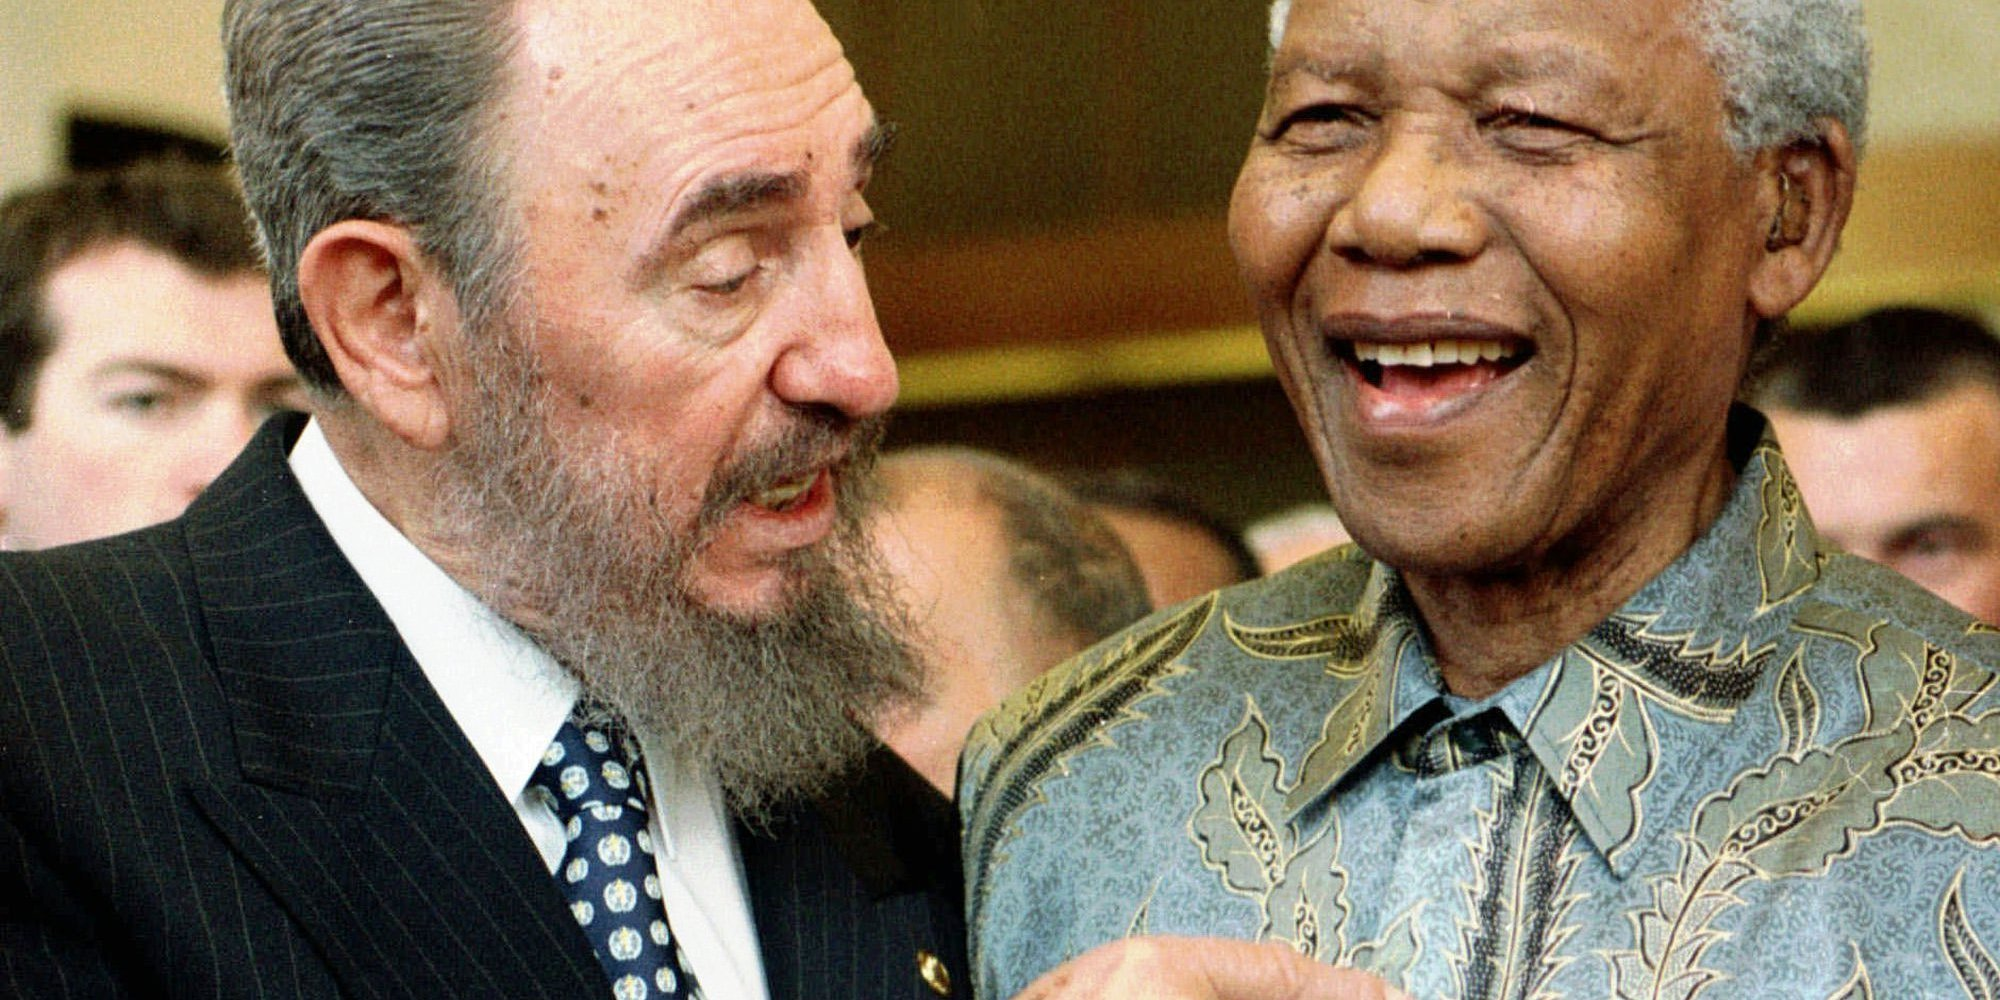 Cuban leader Fidel Castro, left, shares a laugh with South Africa President Nelson Mandela at the World Trade Organization held in Geneva Tuesday, May 19, 1998. Mandela and Castro said in separate speeches that the global trading system had failed to achieve its goals of bringing a higher standard of living to many developing countries. (AP Photo/PATRICK AVIOLAT)